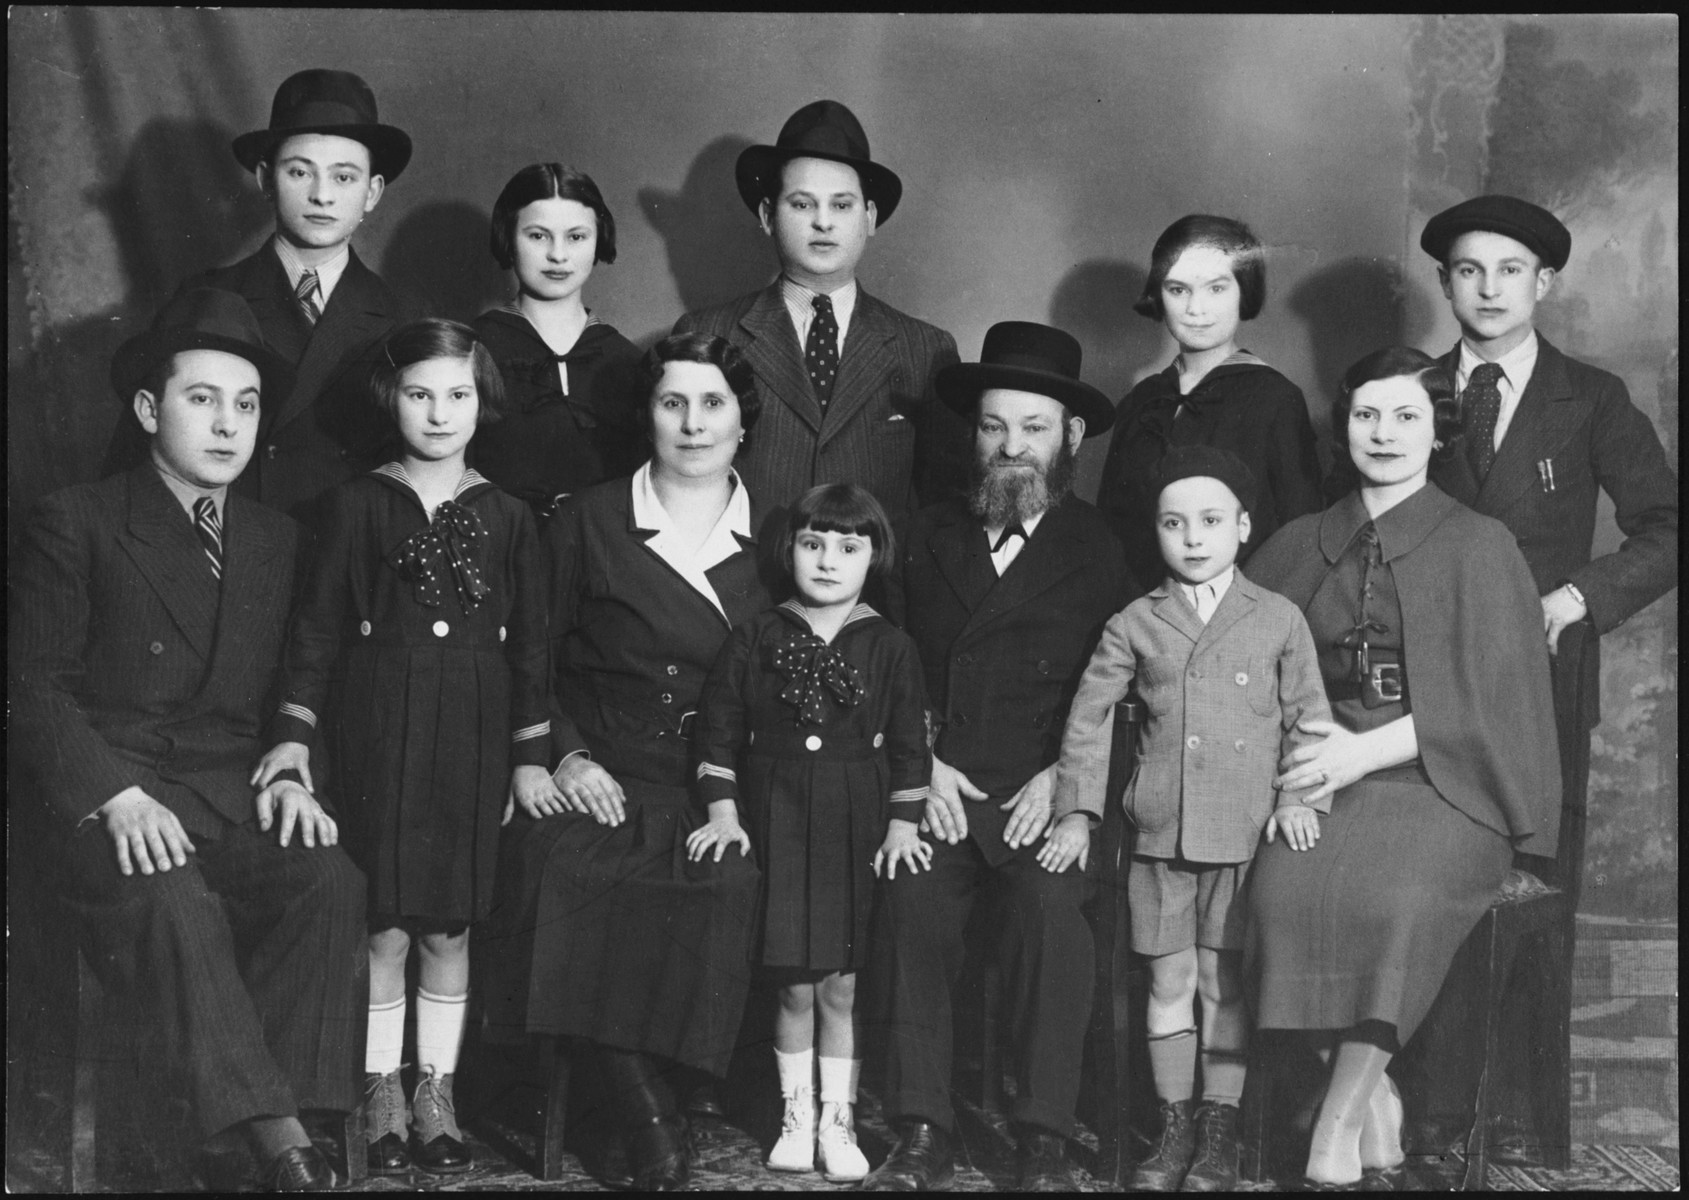 Prewar portrait of a large Hungarian Jewish family in Budapest.  Pictured are the Roz family.  Seated are Marton, Erzsi, Hermina, Anna, Herman, Andor and Szeren Roz.  Standing are Jeno, Iren, Armin, Ilona and Vilmos Roz.